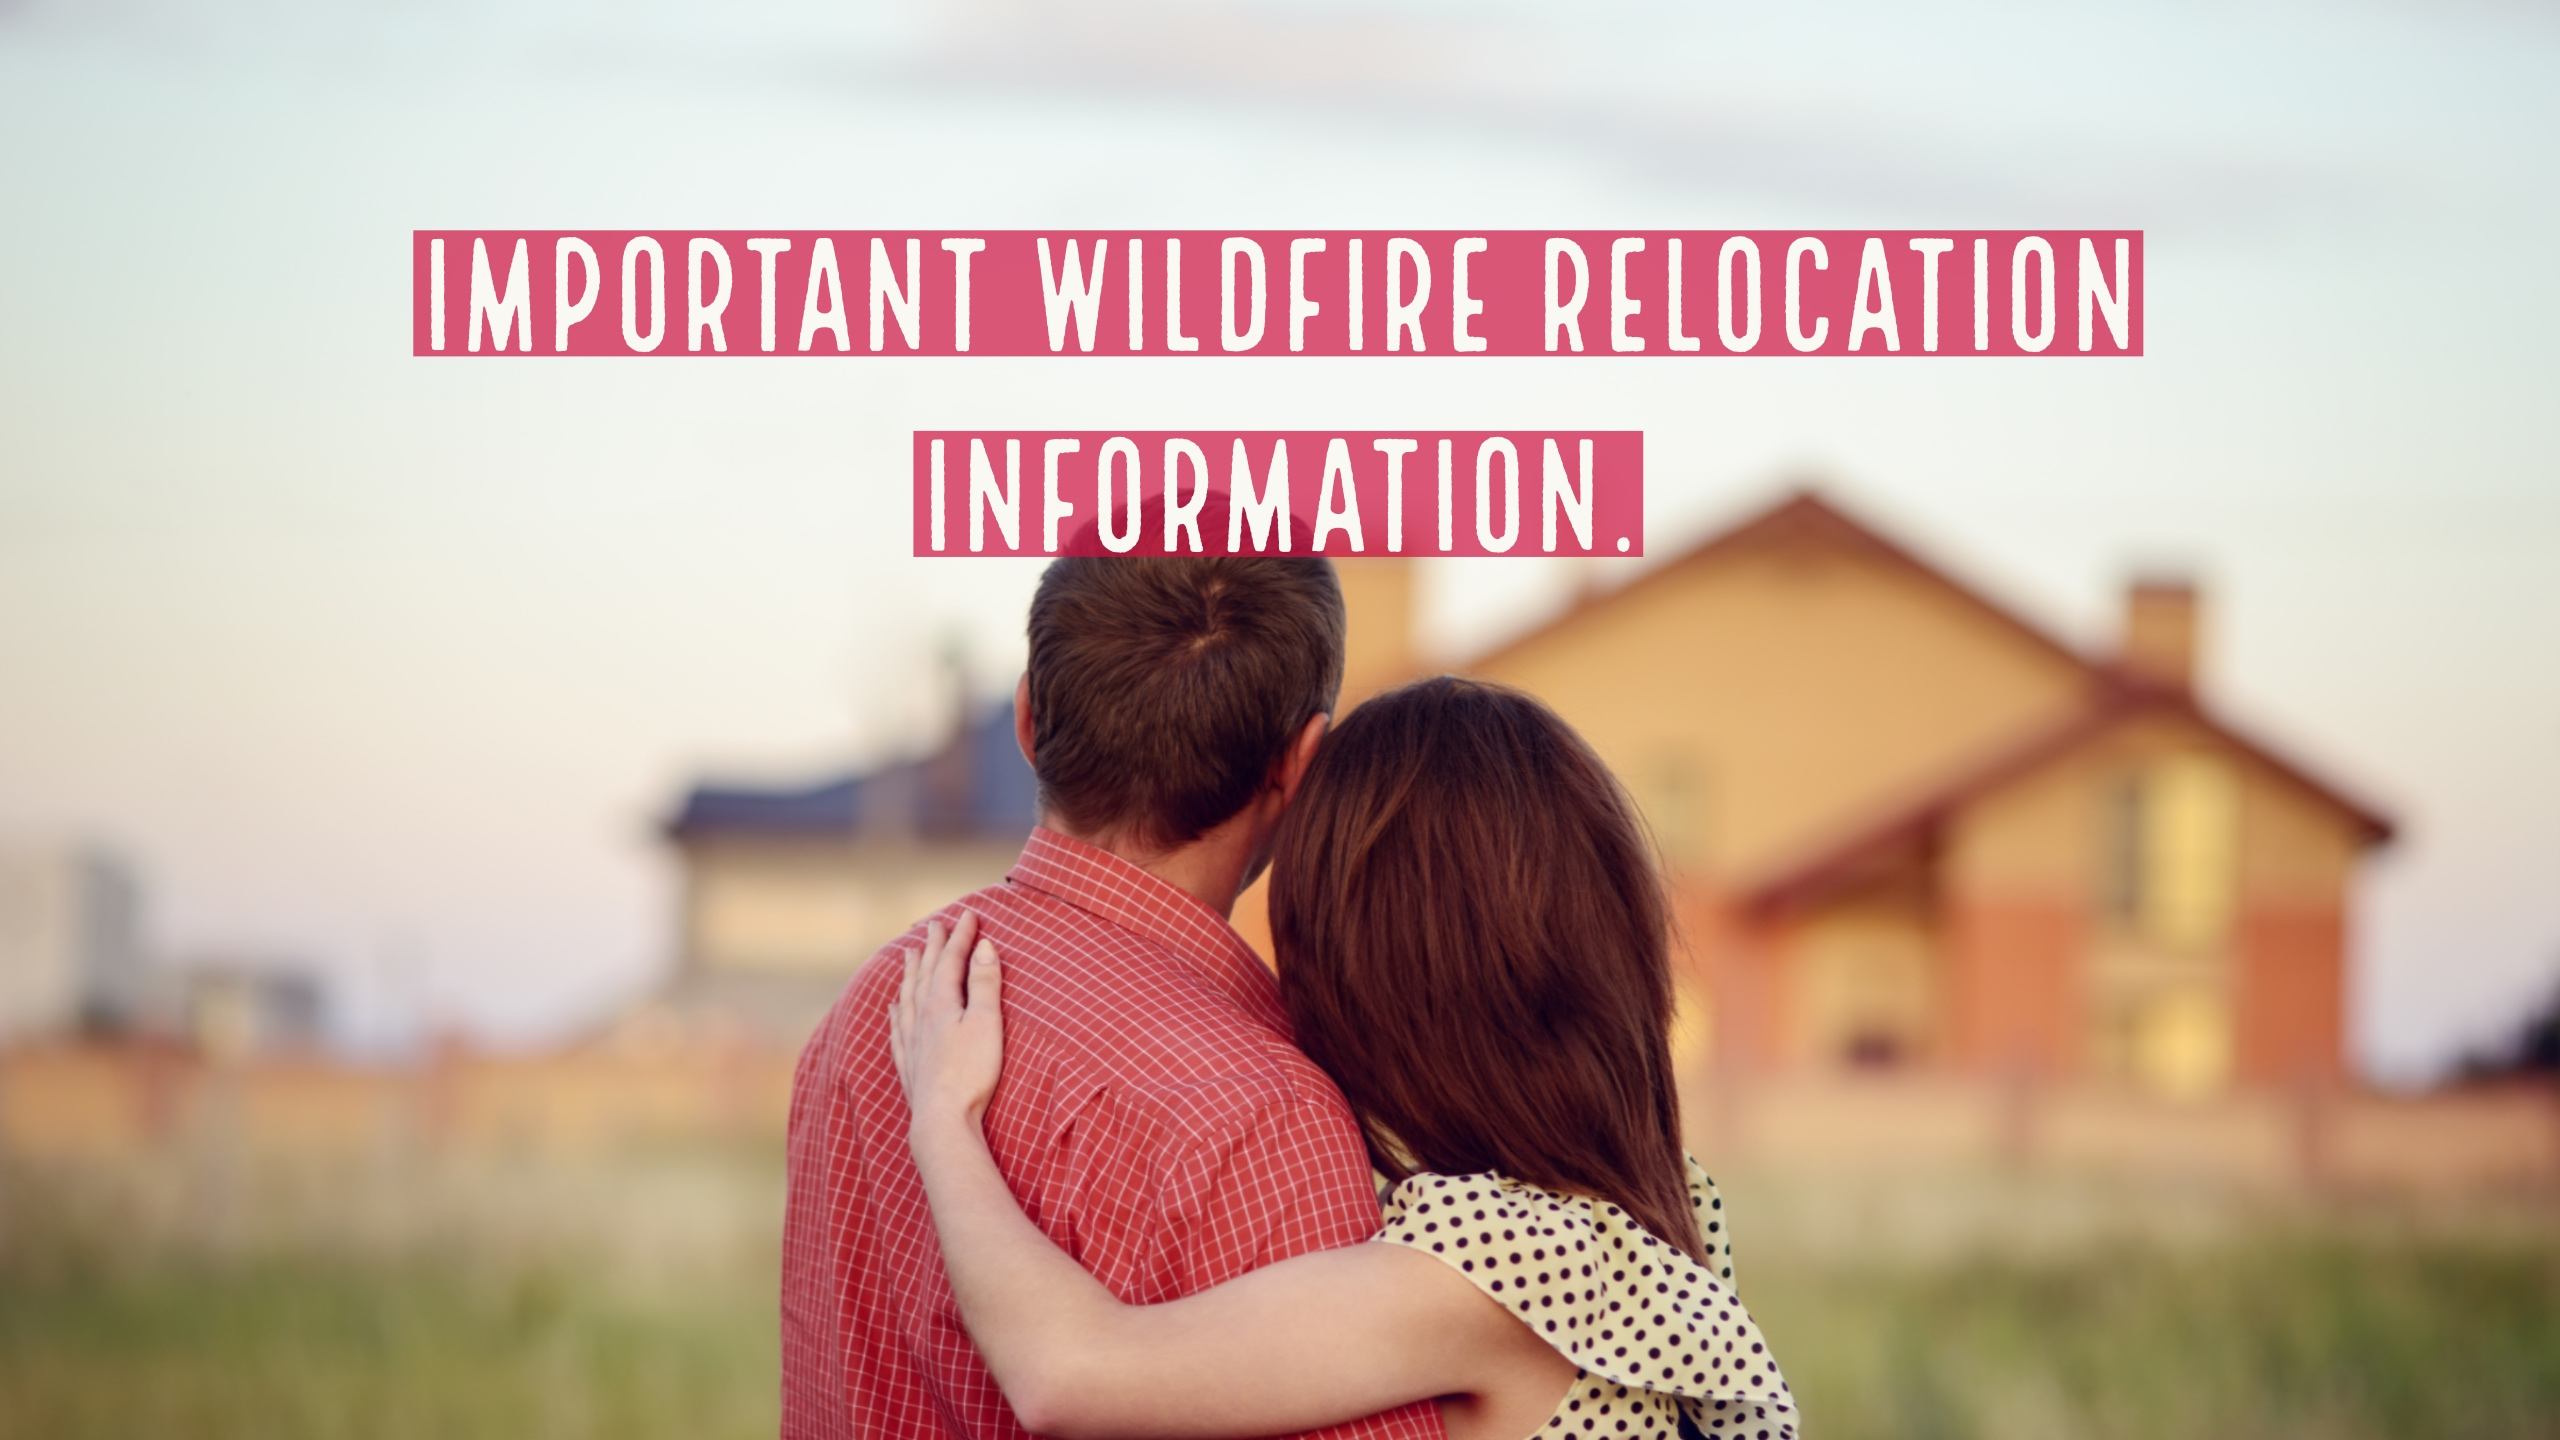 Important wildfire relocation